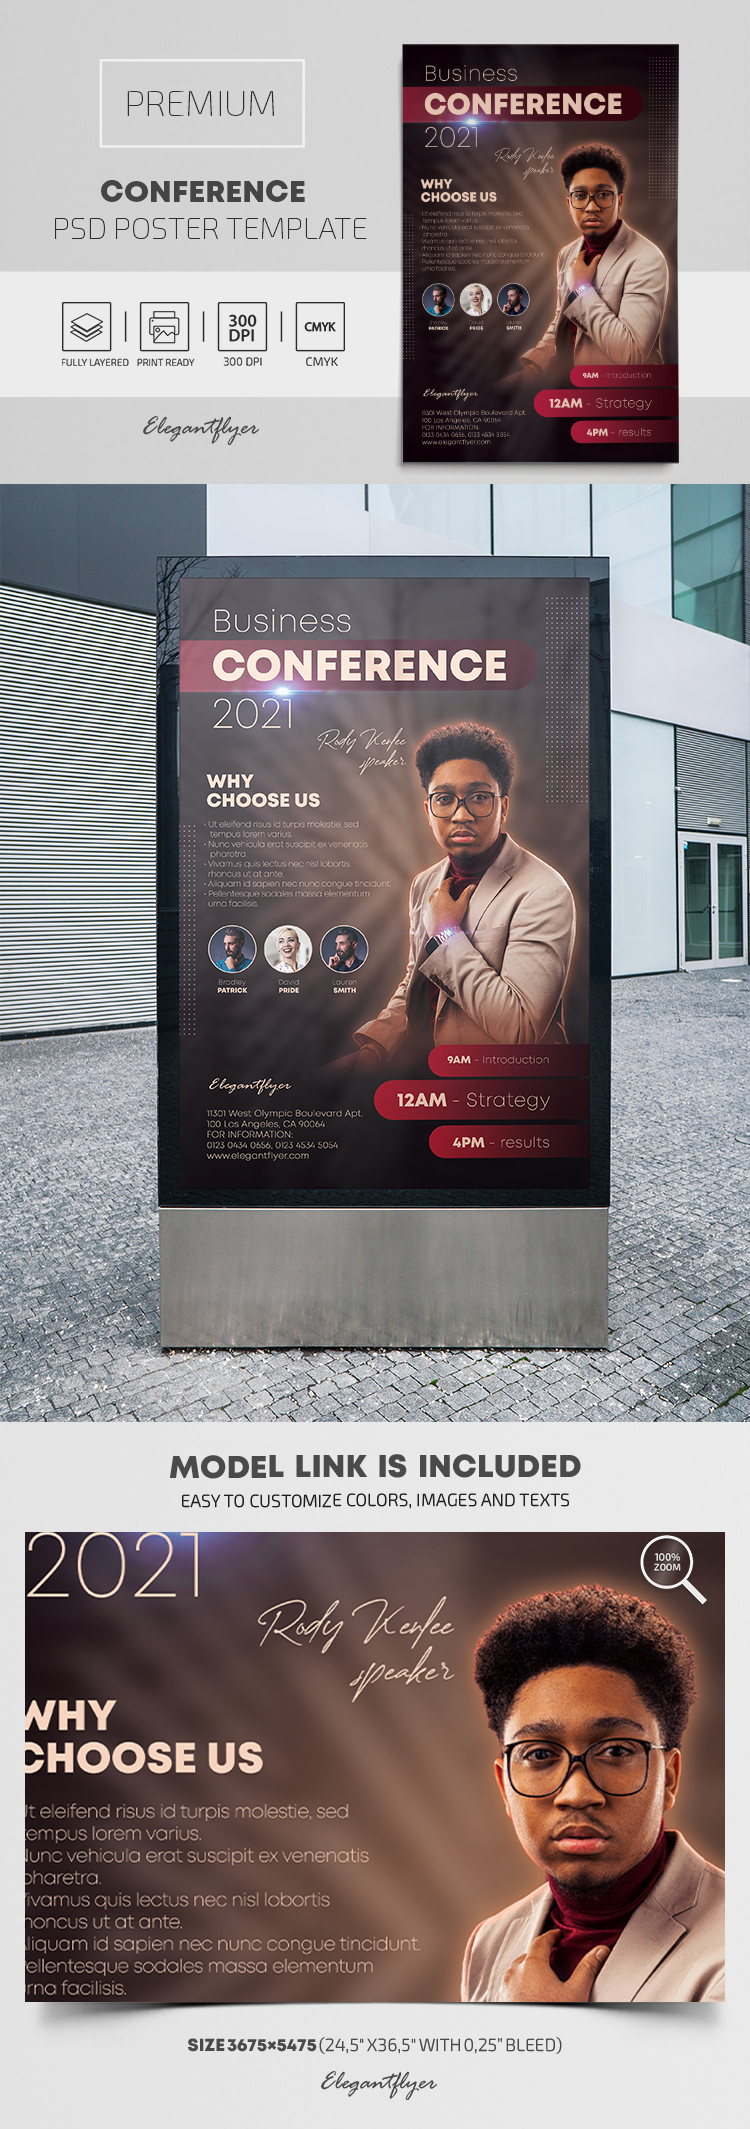 Conference – Premium PSD Poster Template